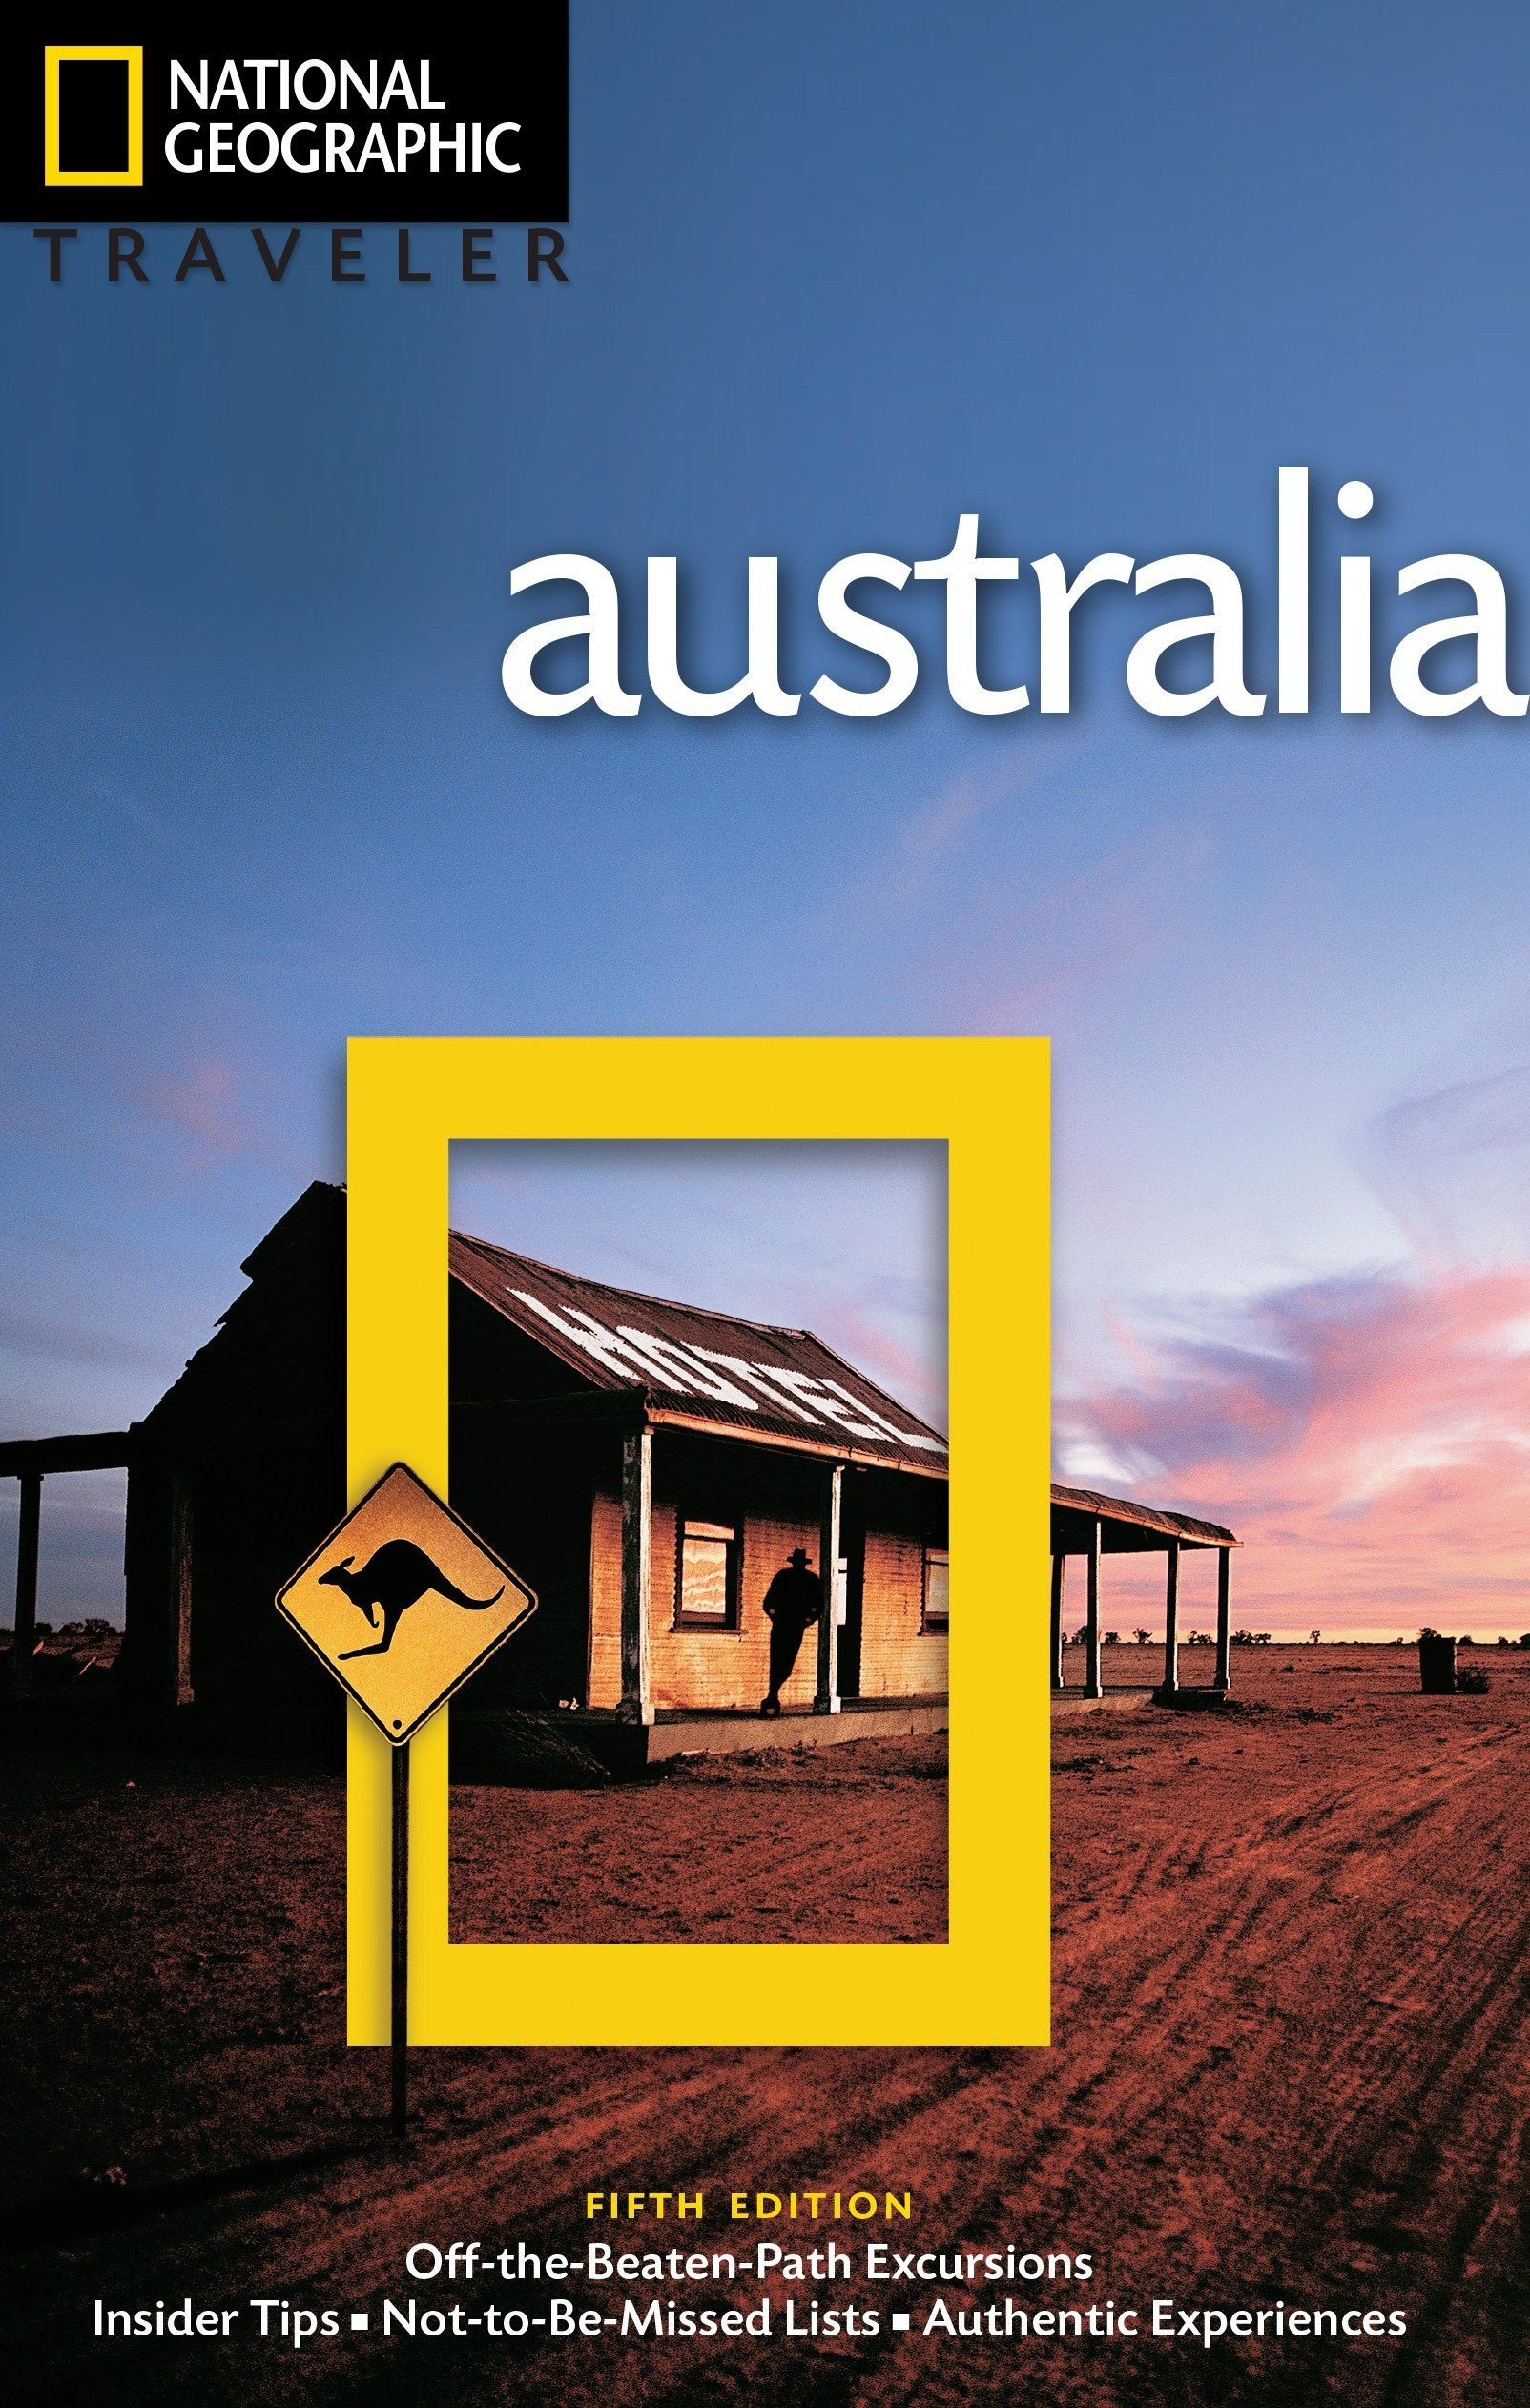 National Geographic Traveler: Australia, 5th Edition by National Geographic